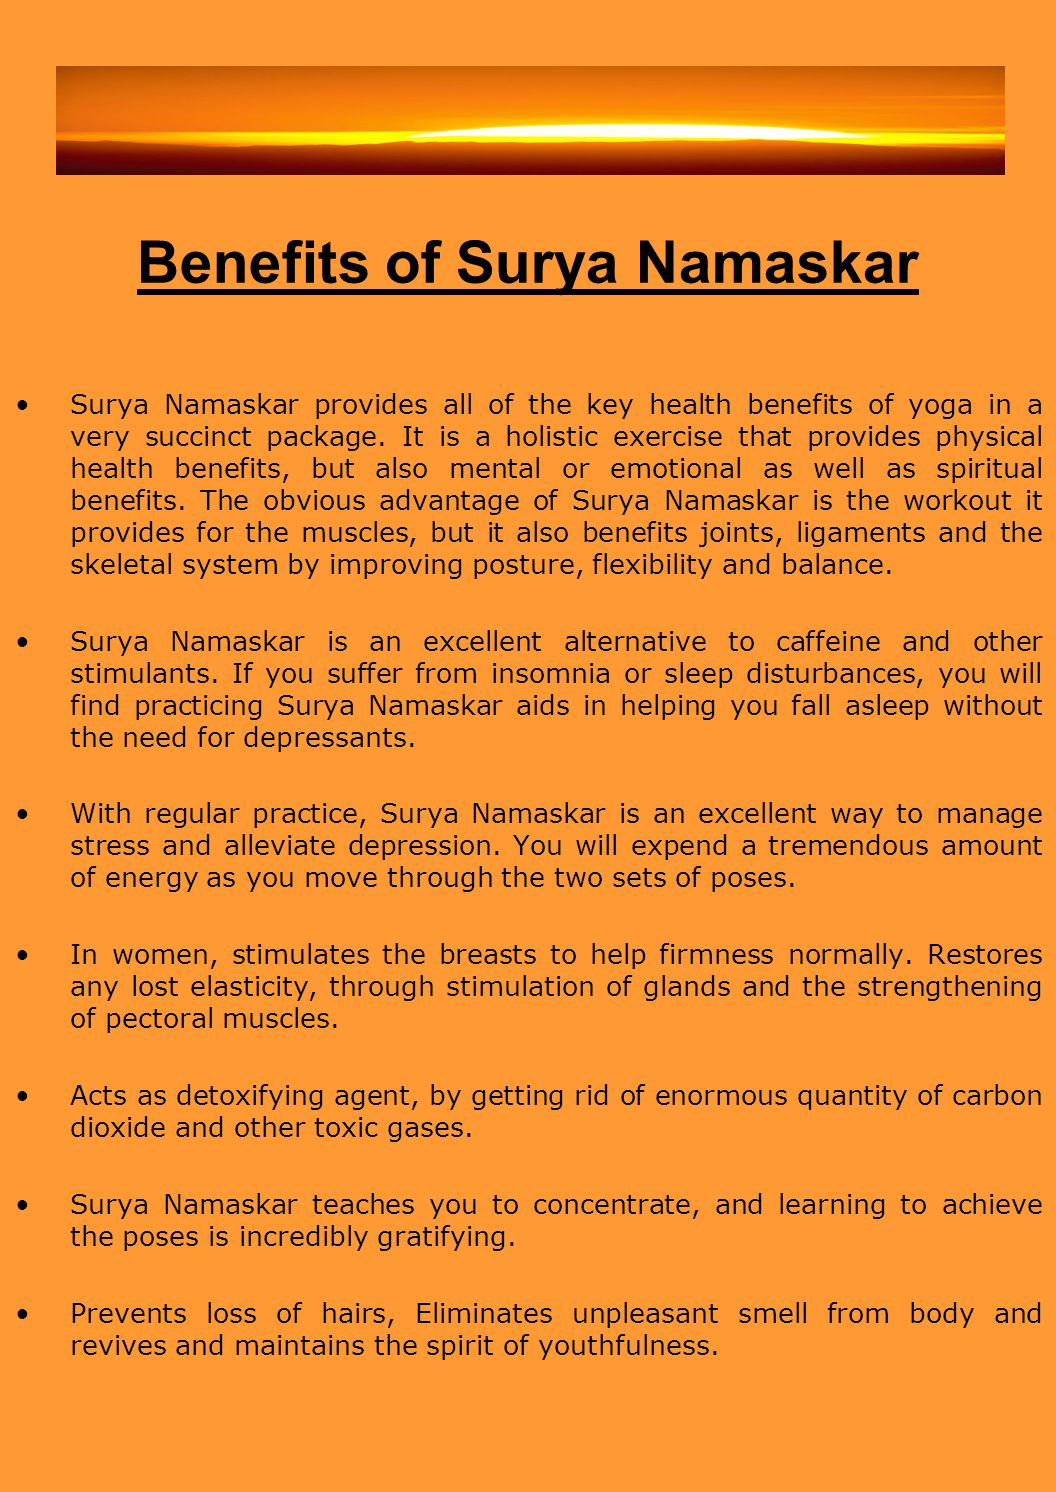 Benefits of Surya Namaskar Surya Namaskar provides all of the key health benefits of yoga in a very succinct package. It is a holistic exercise that p